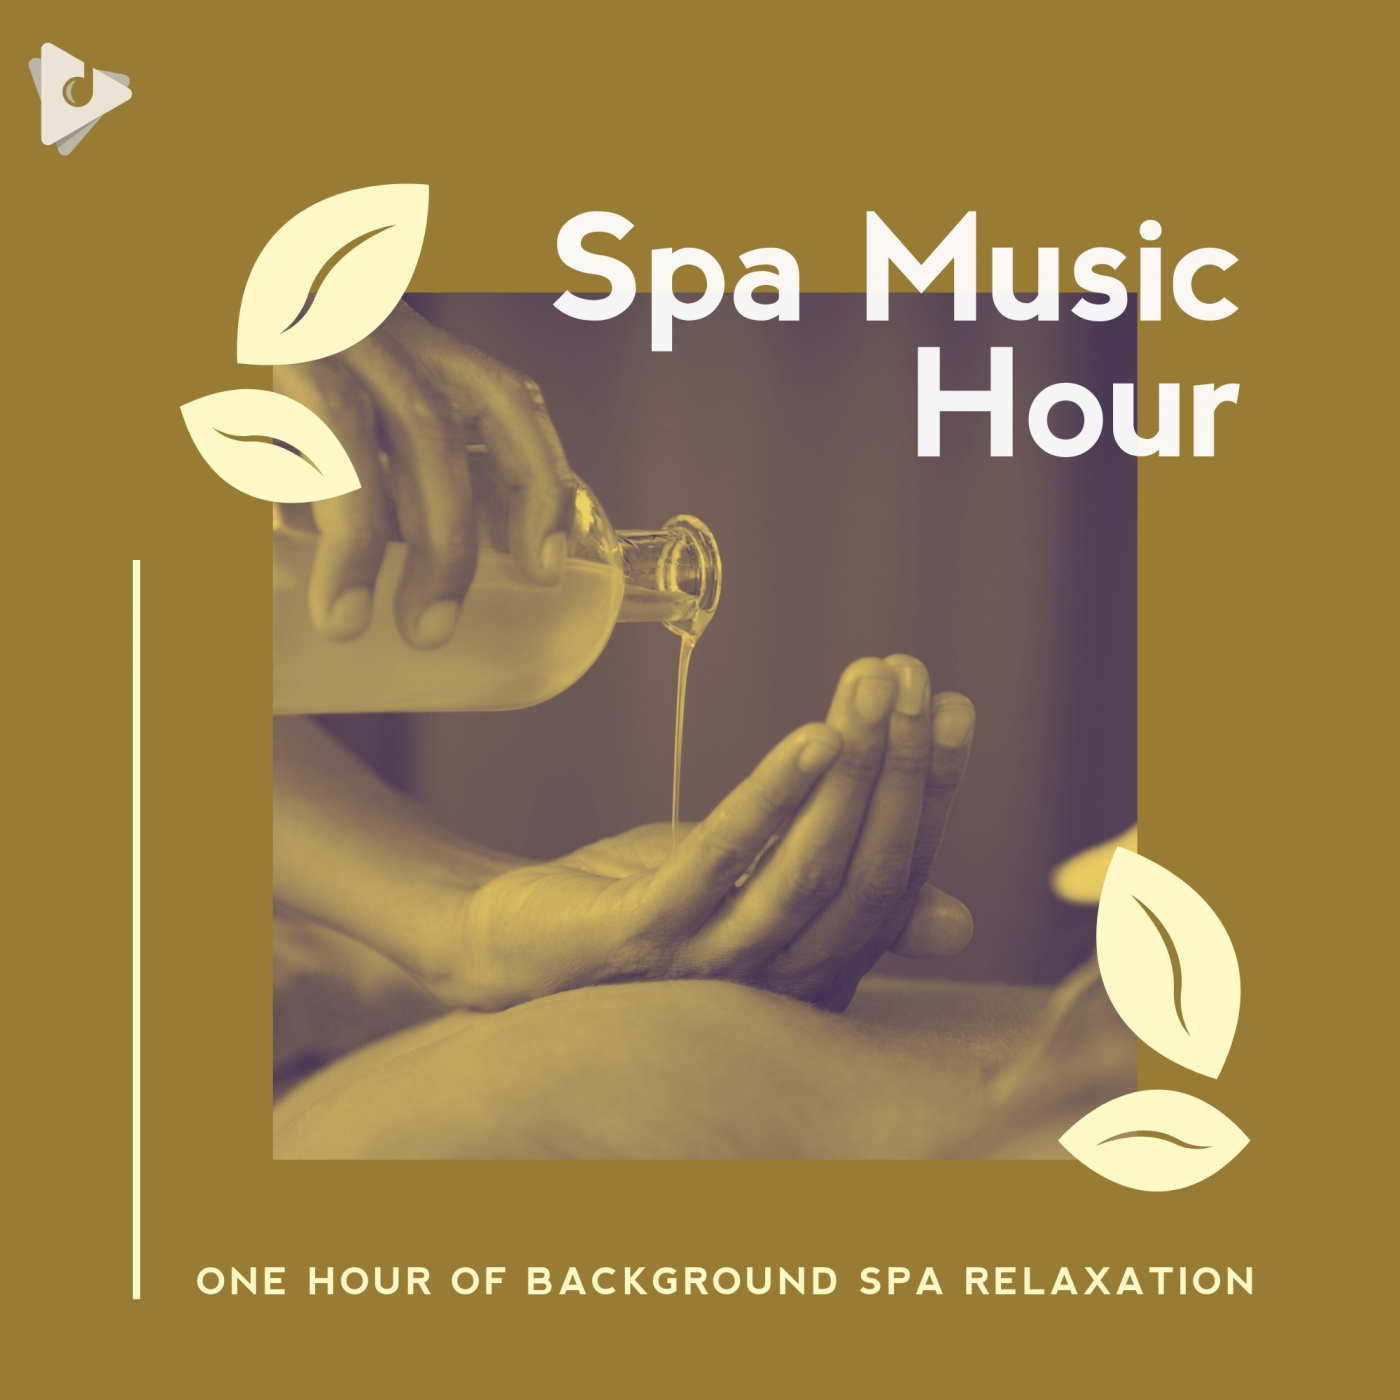 One Hour of Background Spa Relaxation